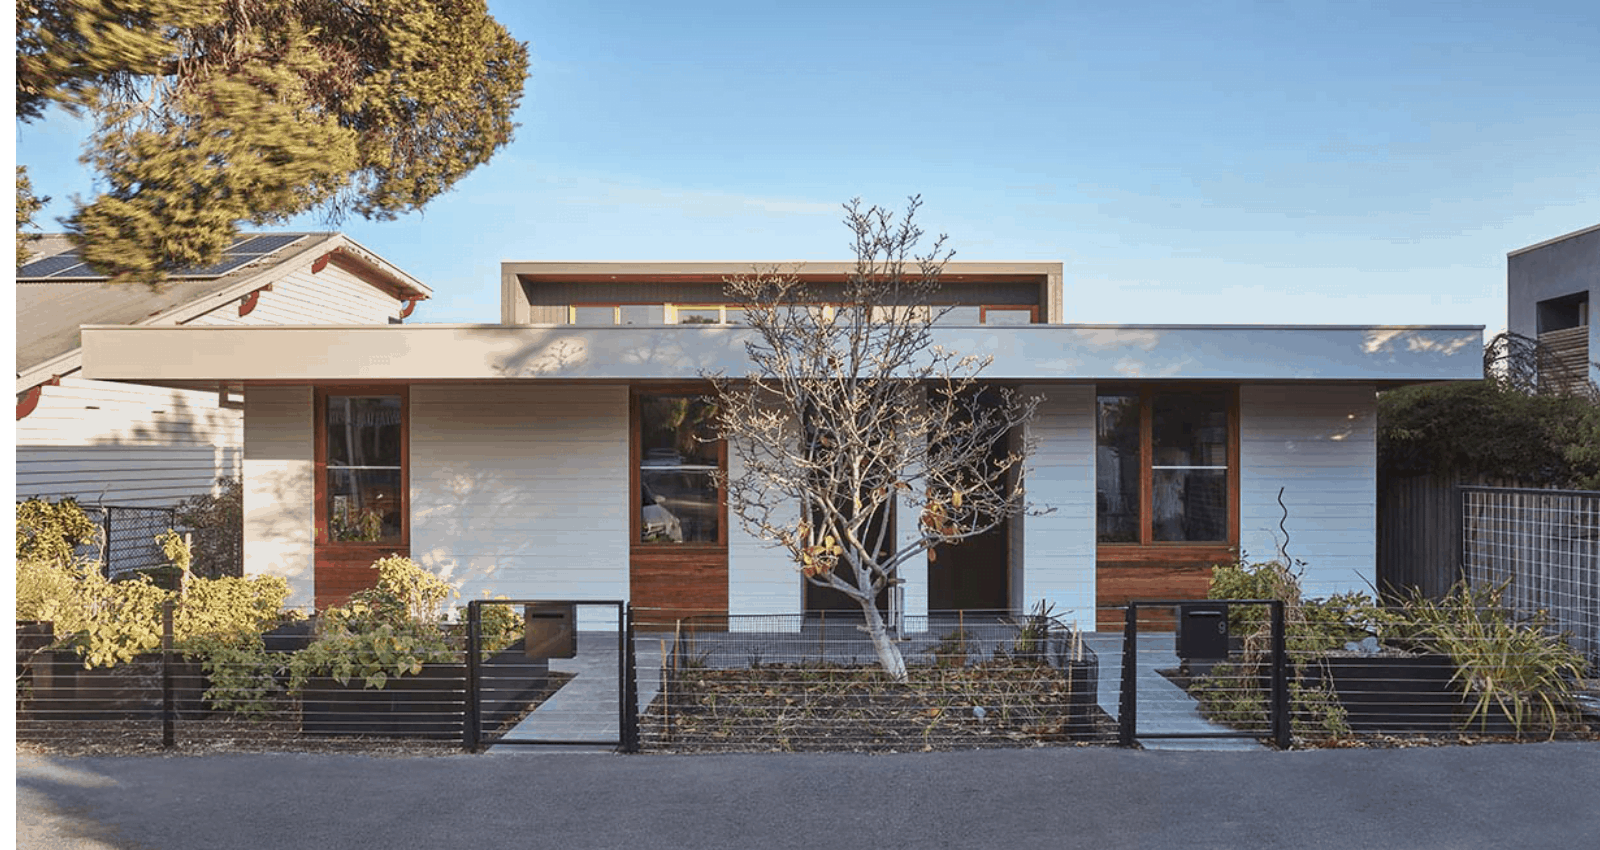 , News, SHM - Sustainable Homes Melbourne